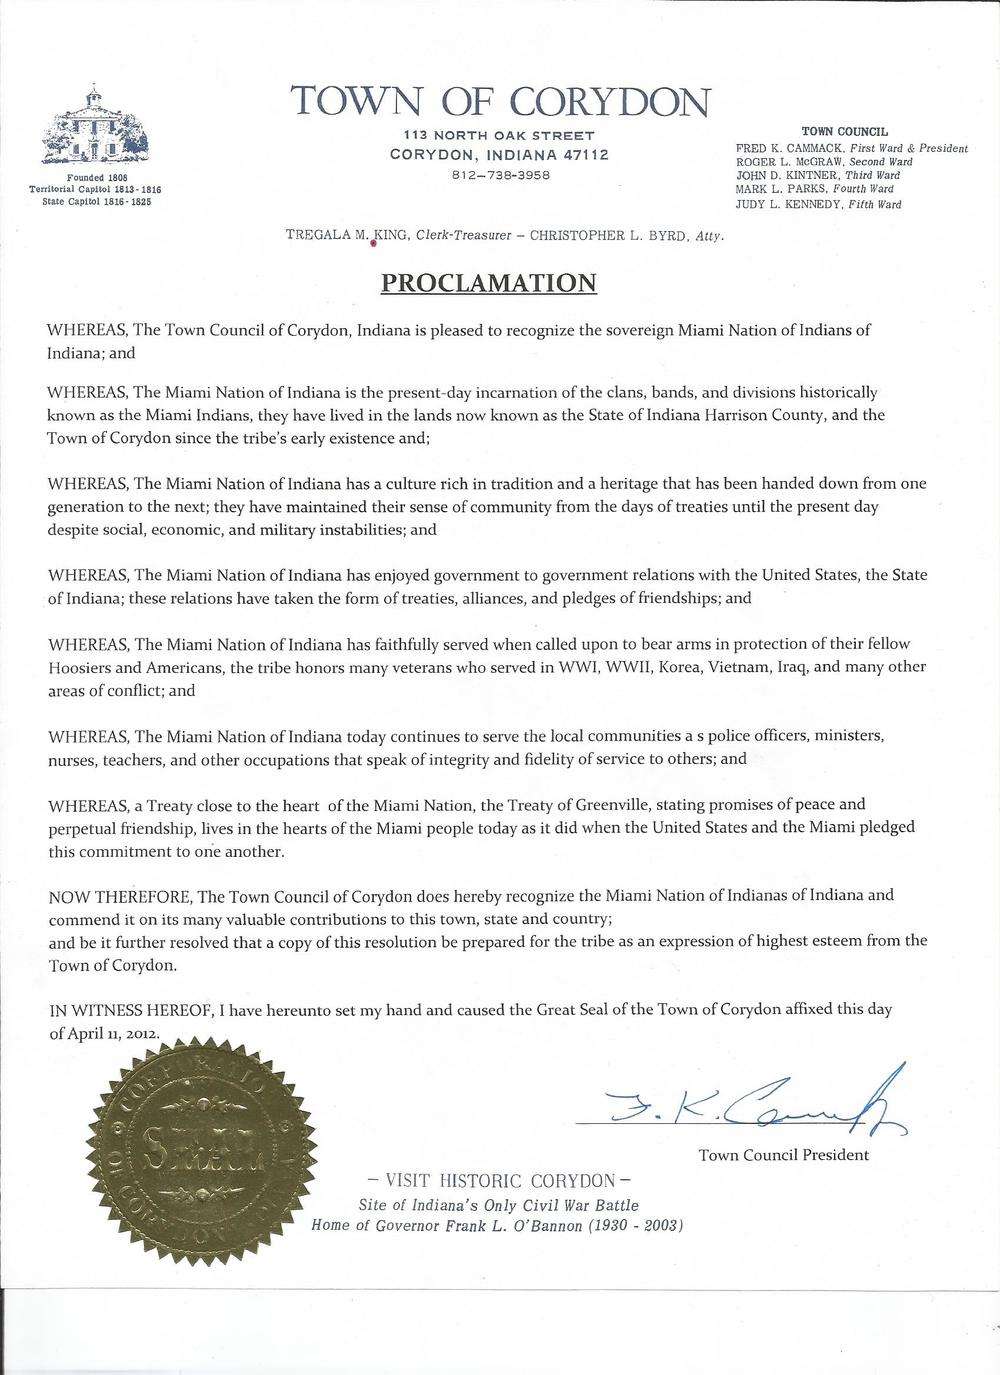 Proclamation City of Corydon.jpg